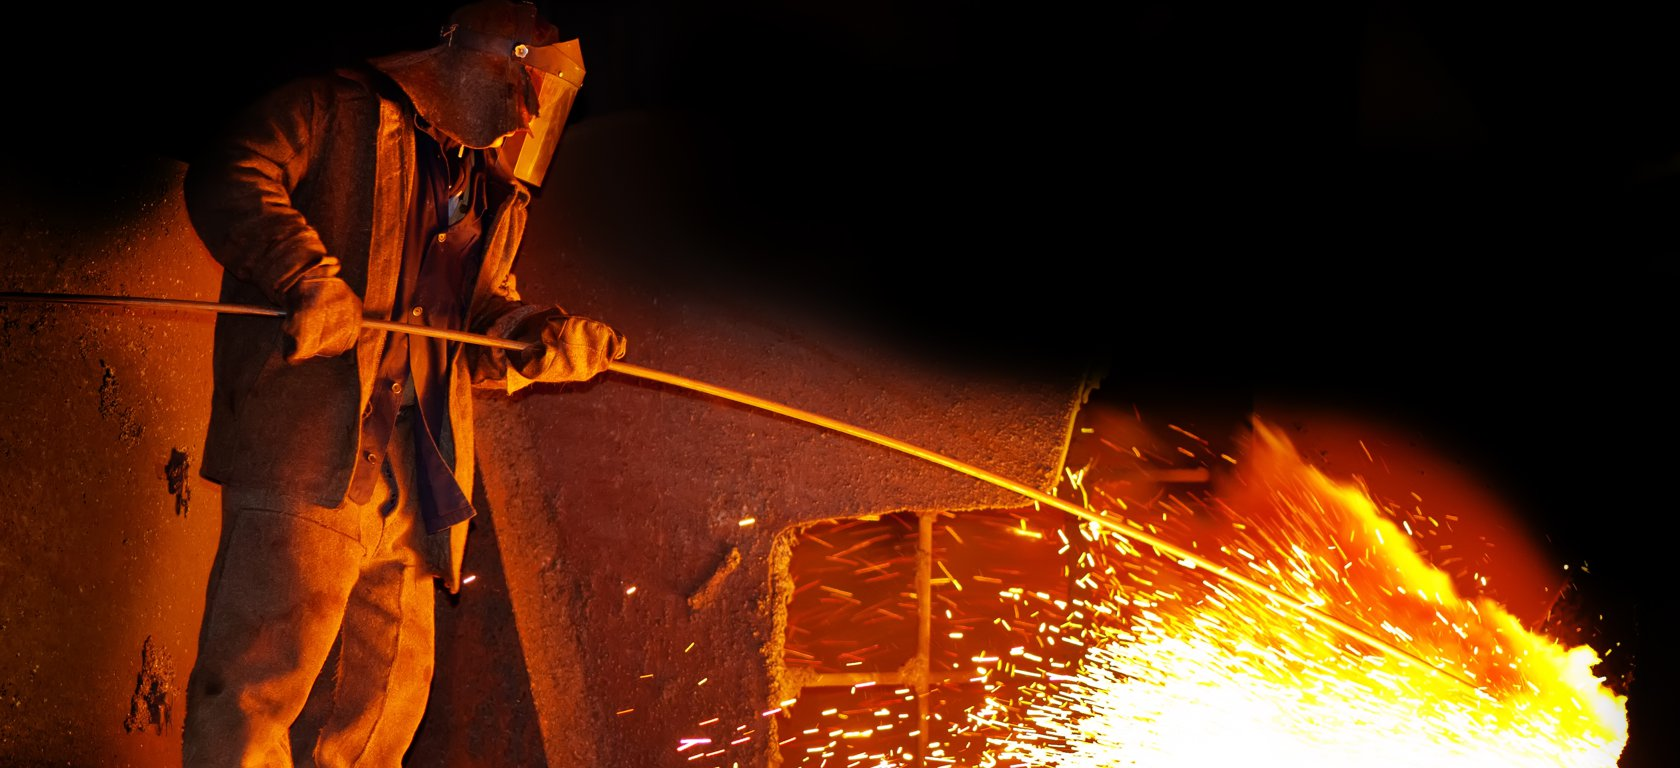 UK On Site Calibration Services for Foundries and Steel Plants